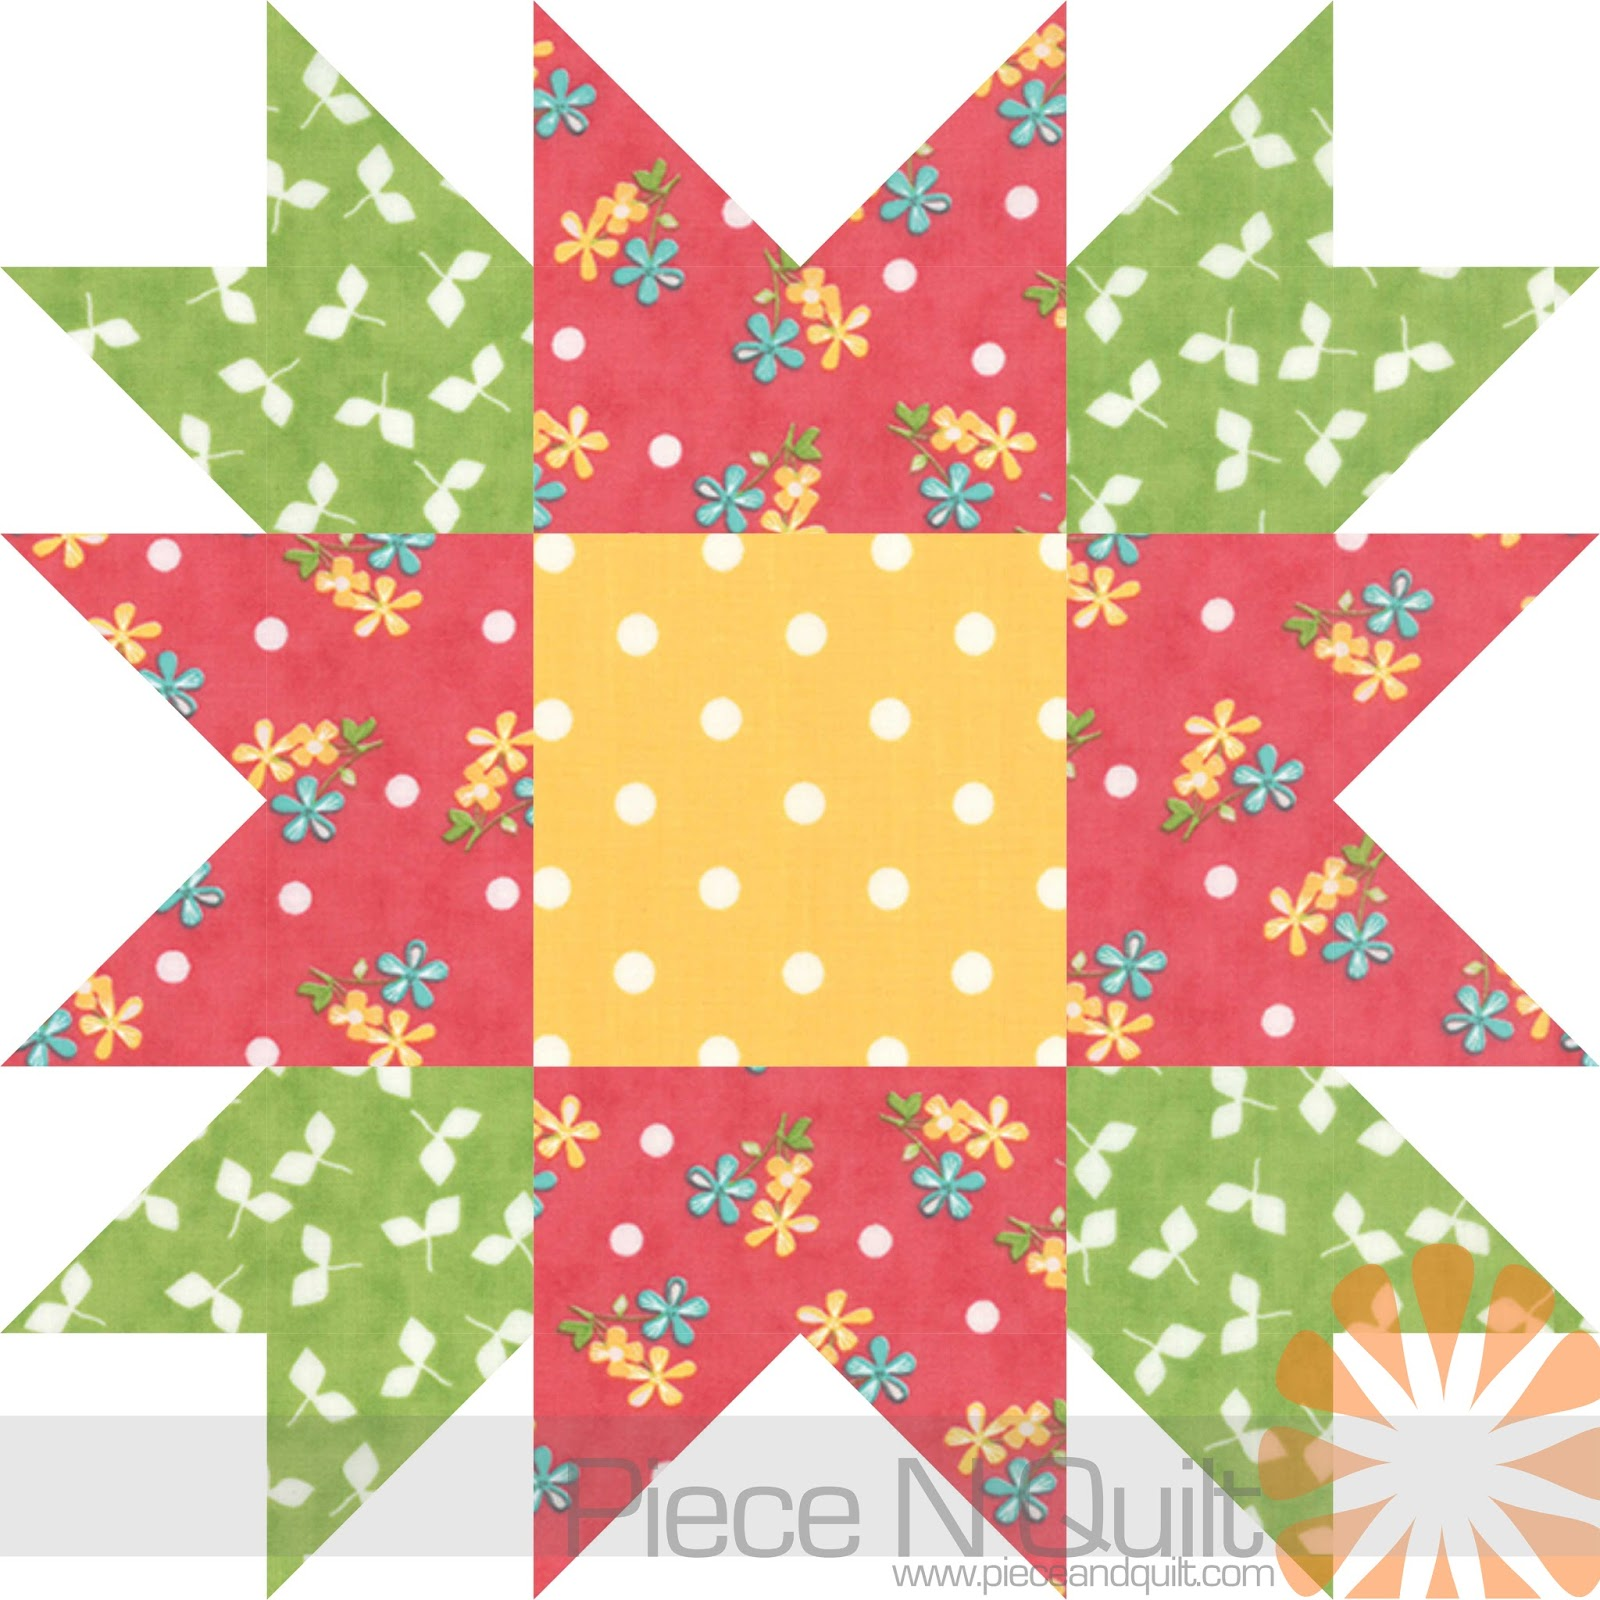 Piece N Quilt: Flower Star Quilt Pattern - The Battle Against Breast Cancer